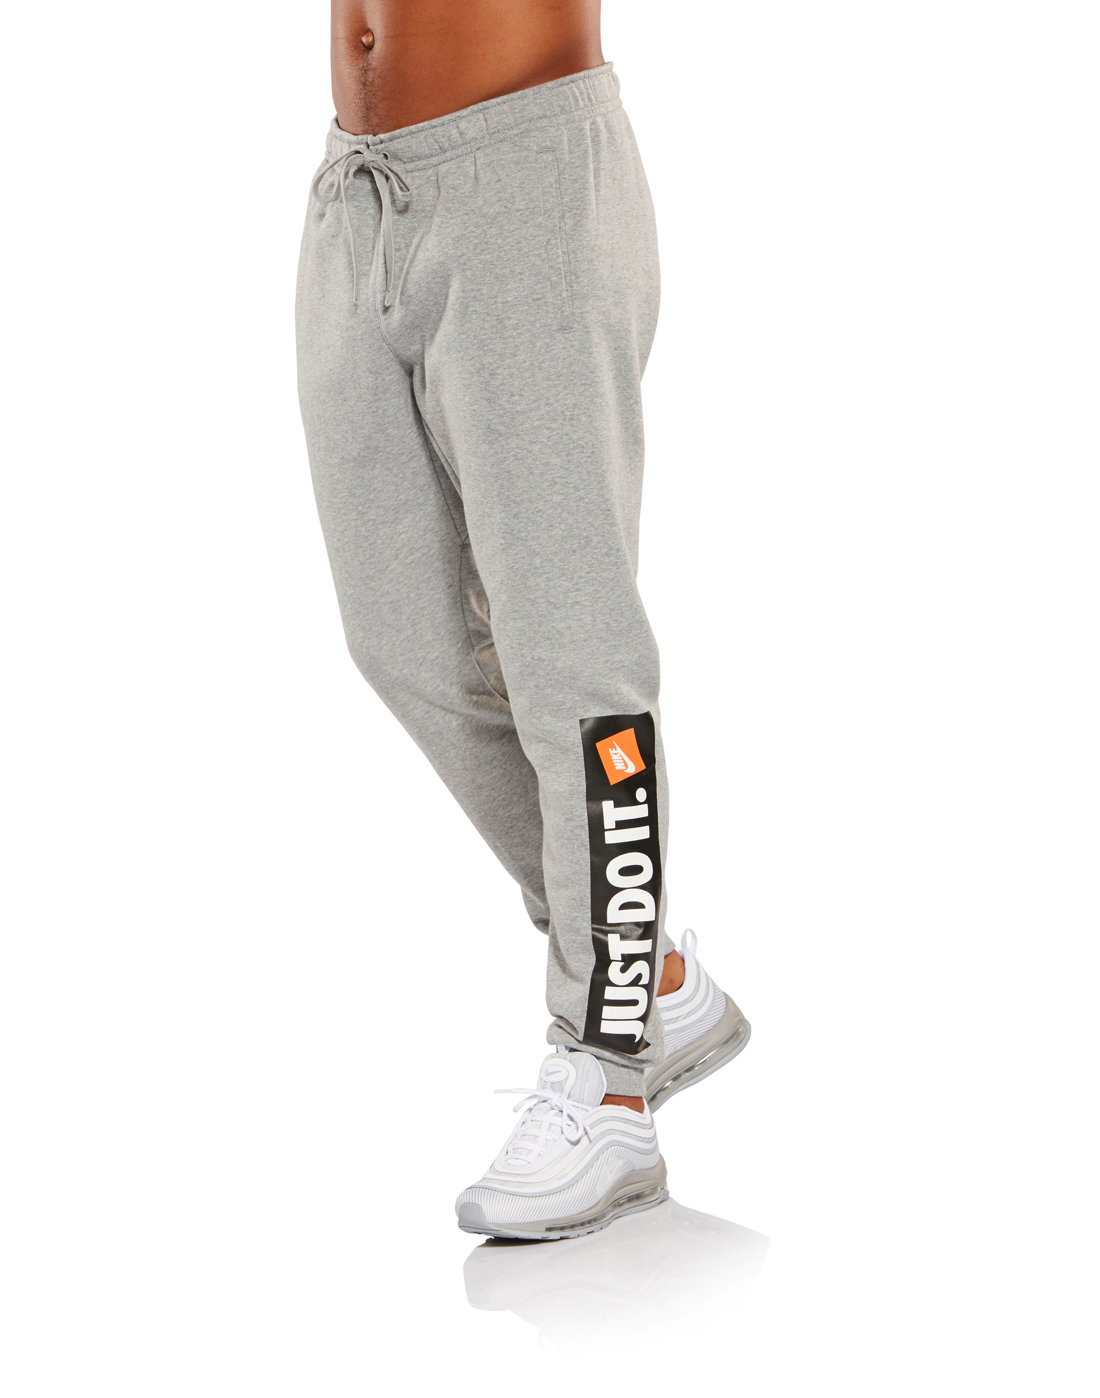 Men's Grey Nike 'Just Do It' Joggers | Life Style Sports